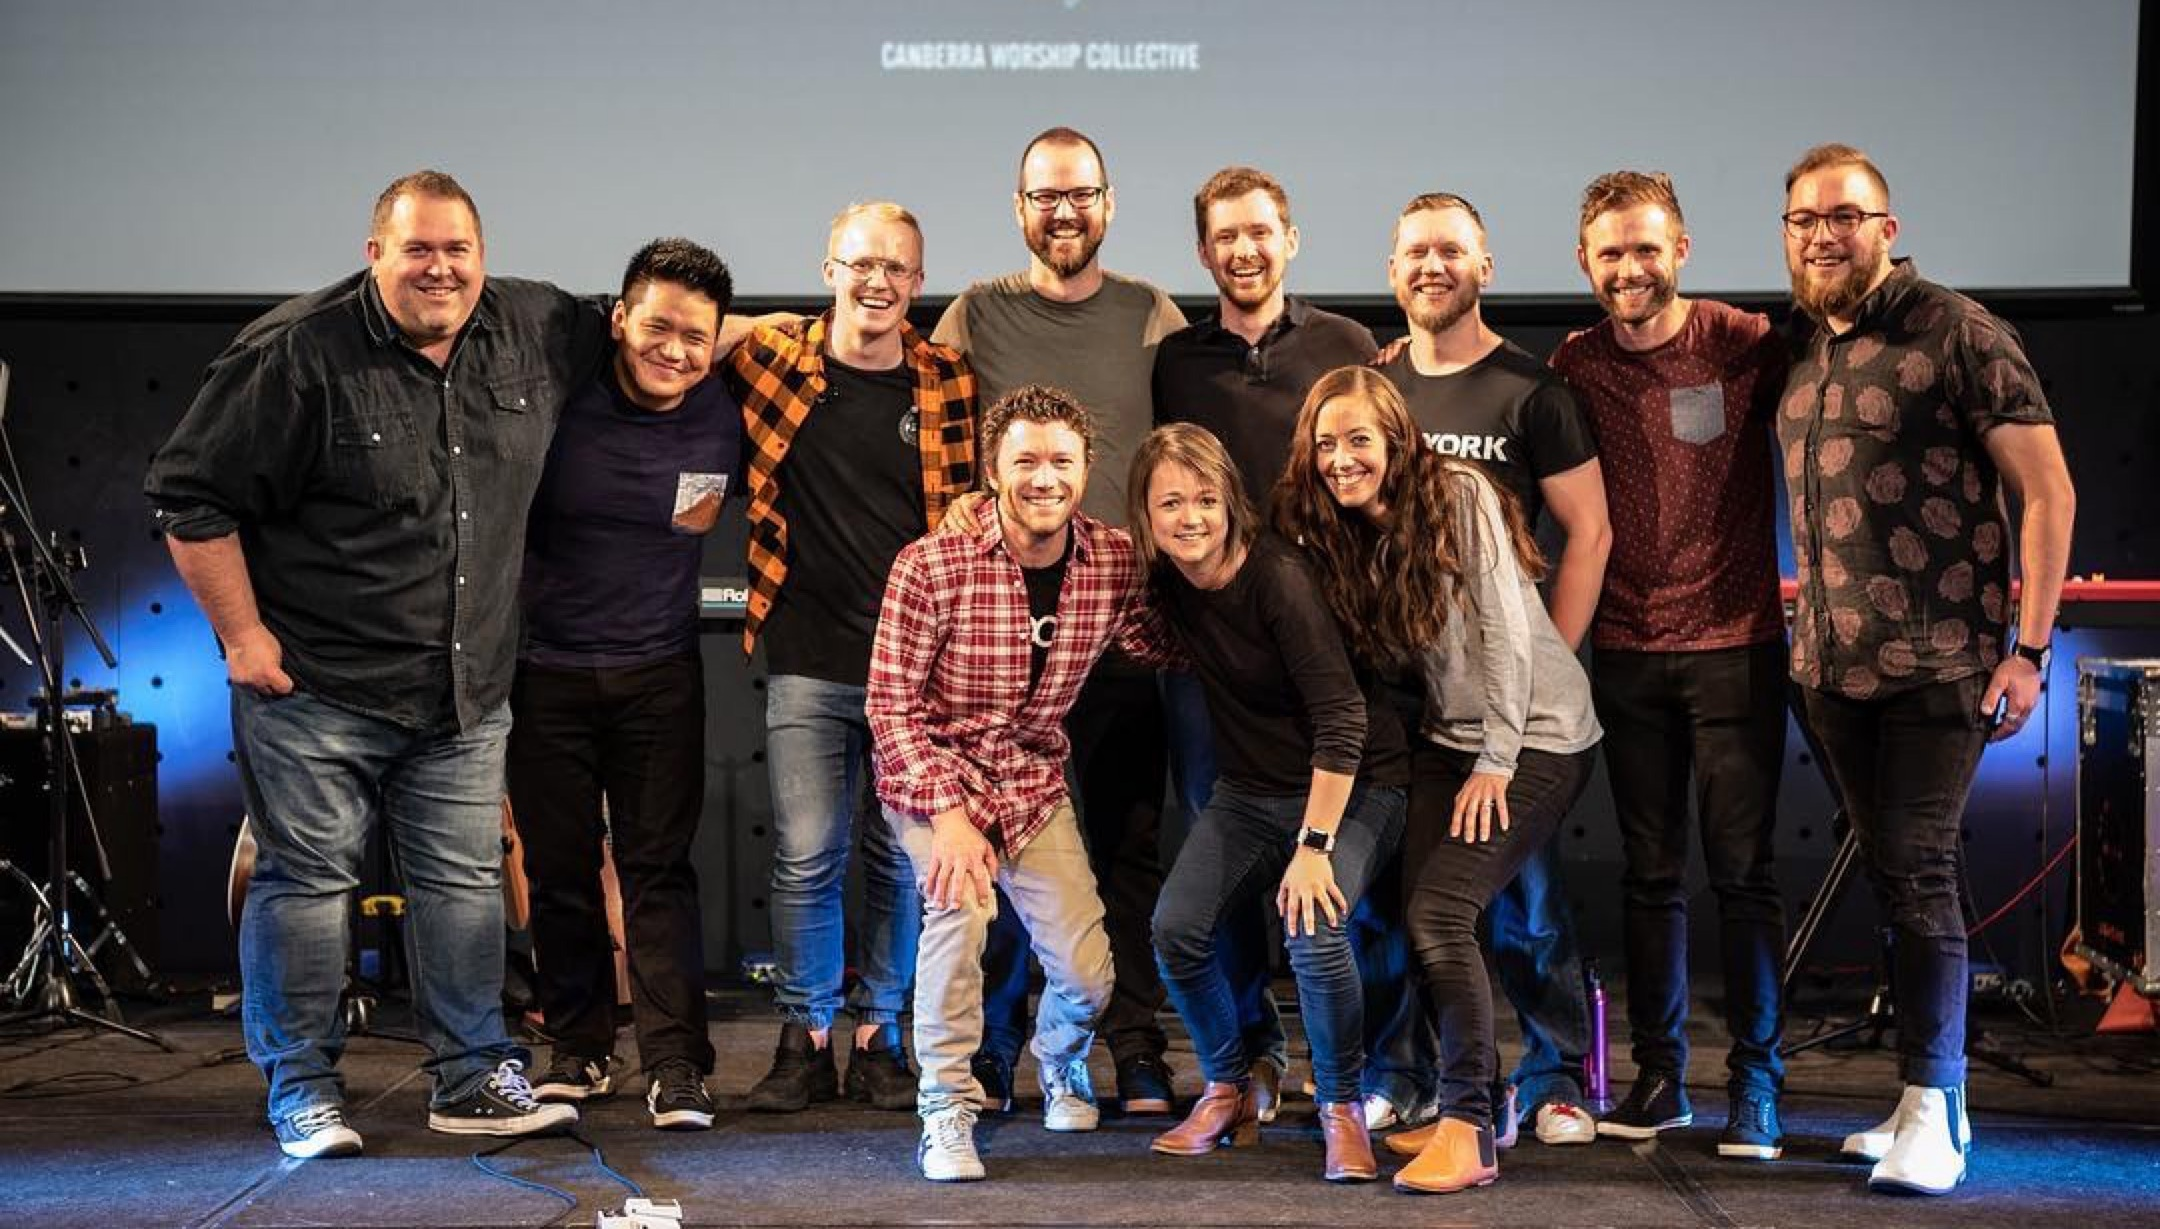 Some of the Canberra Worship Collective collaborators at the November 2018 launch of 'Side by Side'.